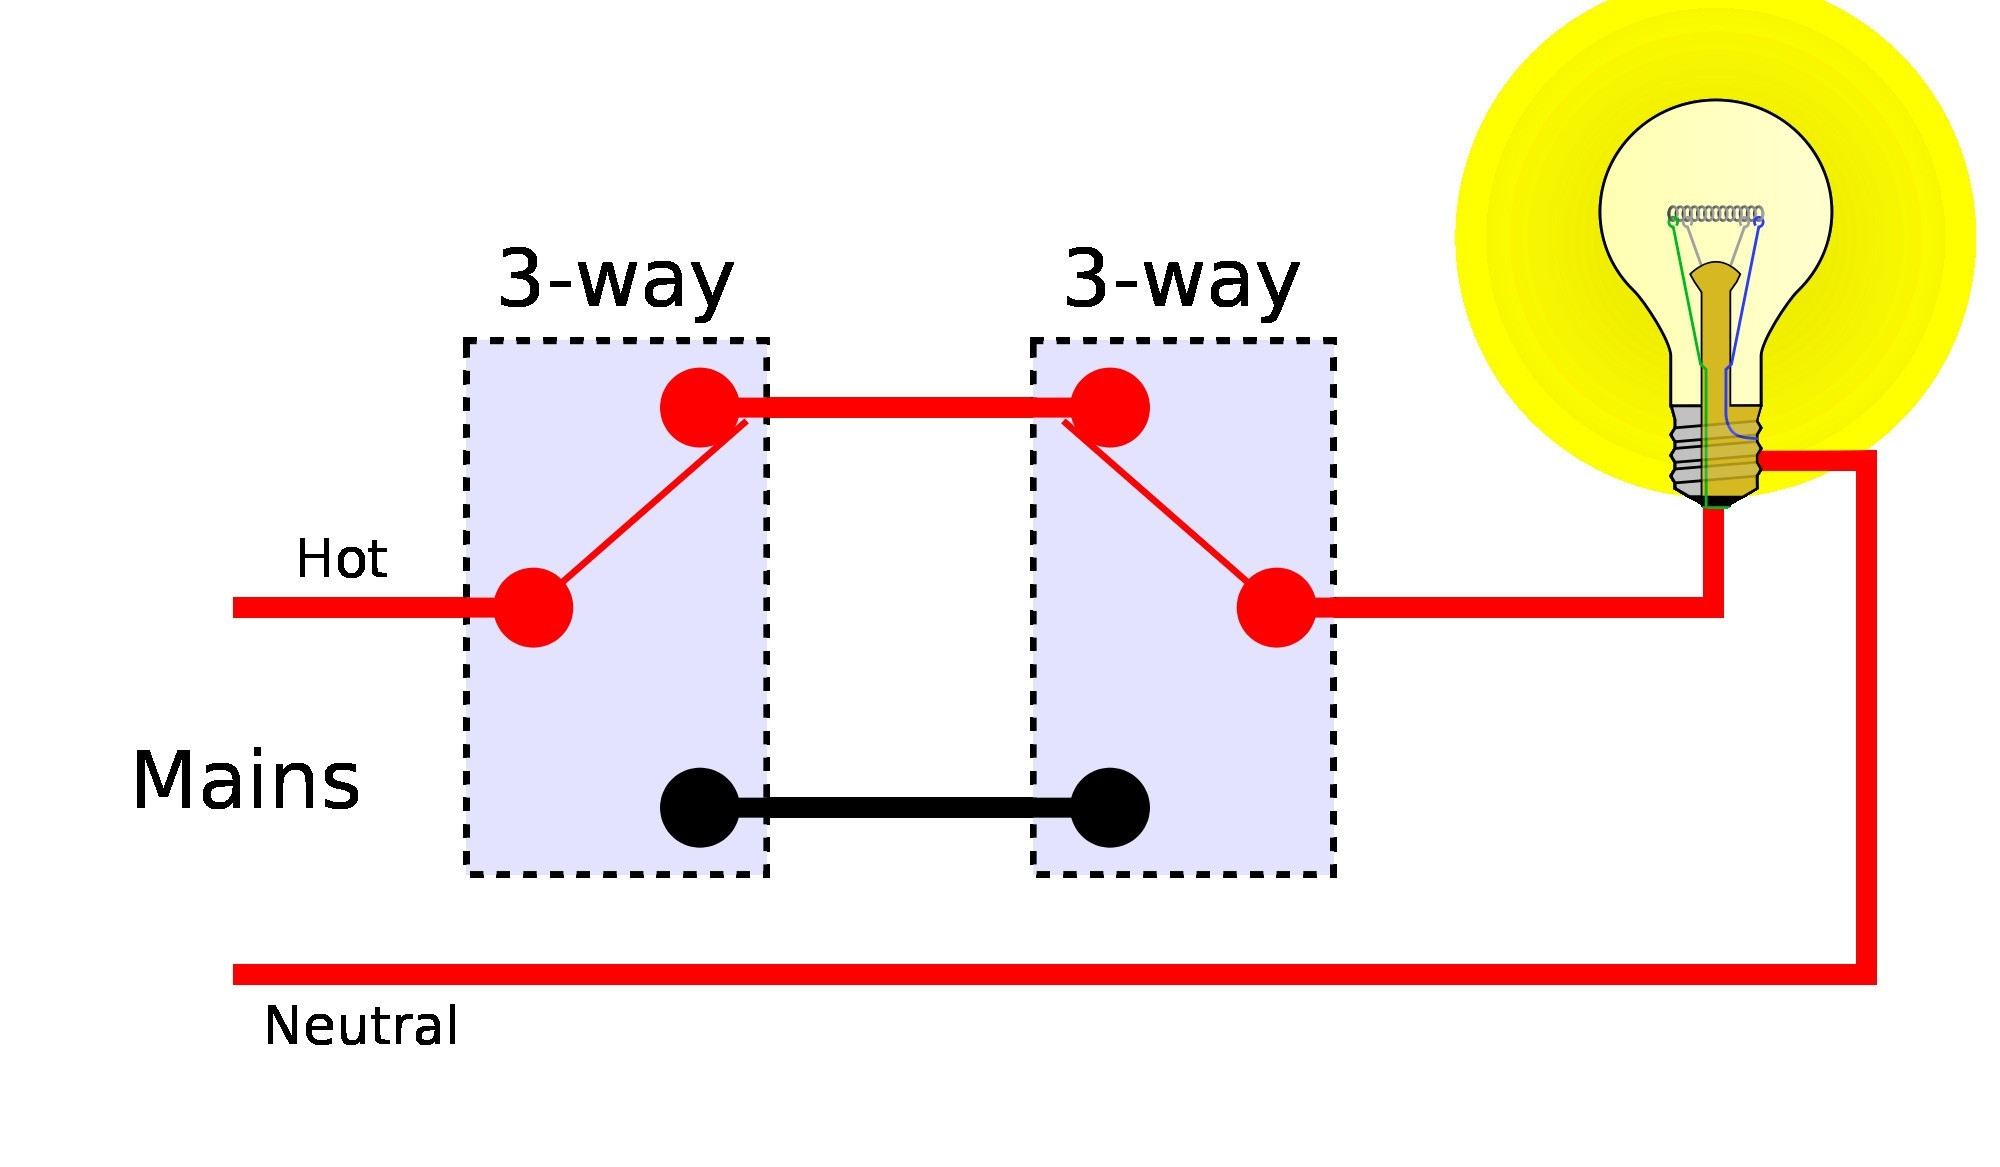 3 way switch wiring diagram light in middle Collection-Light Switch Wiring Diagram south Africa Simple Wiring Diagram California 3 Way Switch New 3 Way 11-c